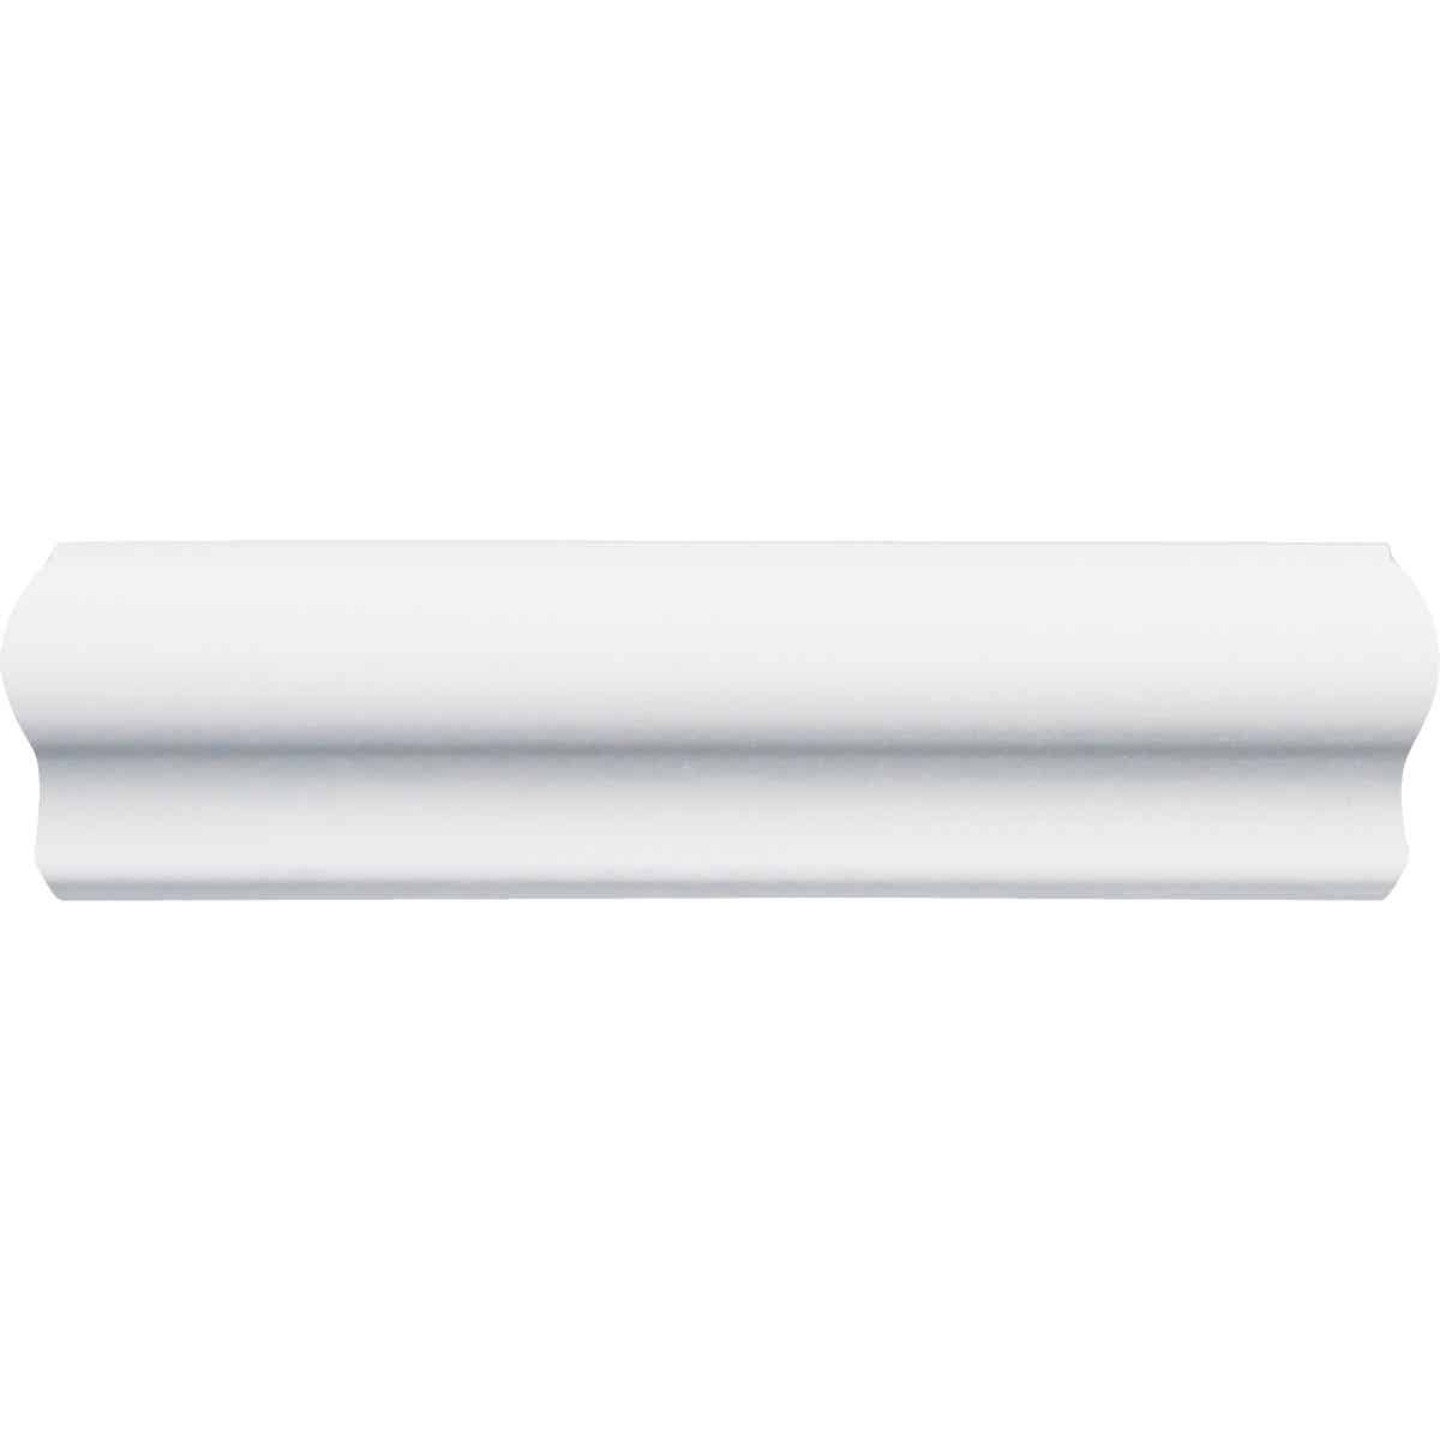 Inteplast Building Products 7/16 In. x 1-3/16 In. x 8 Ft. Crystal White Polystyrene Base Molding Cap Image 3